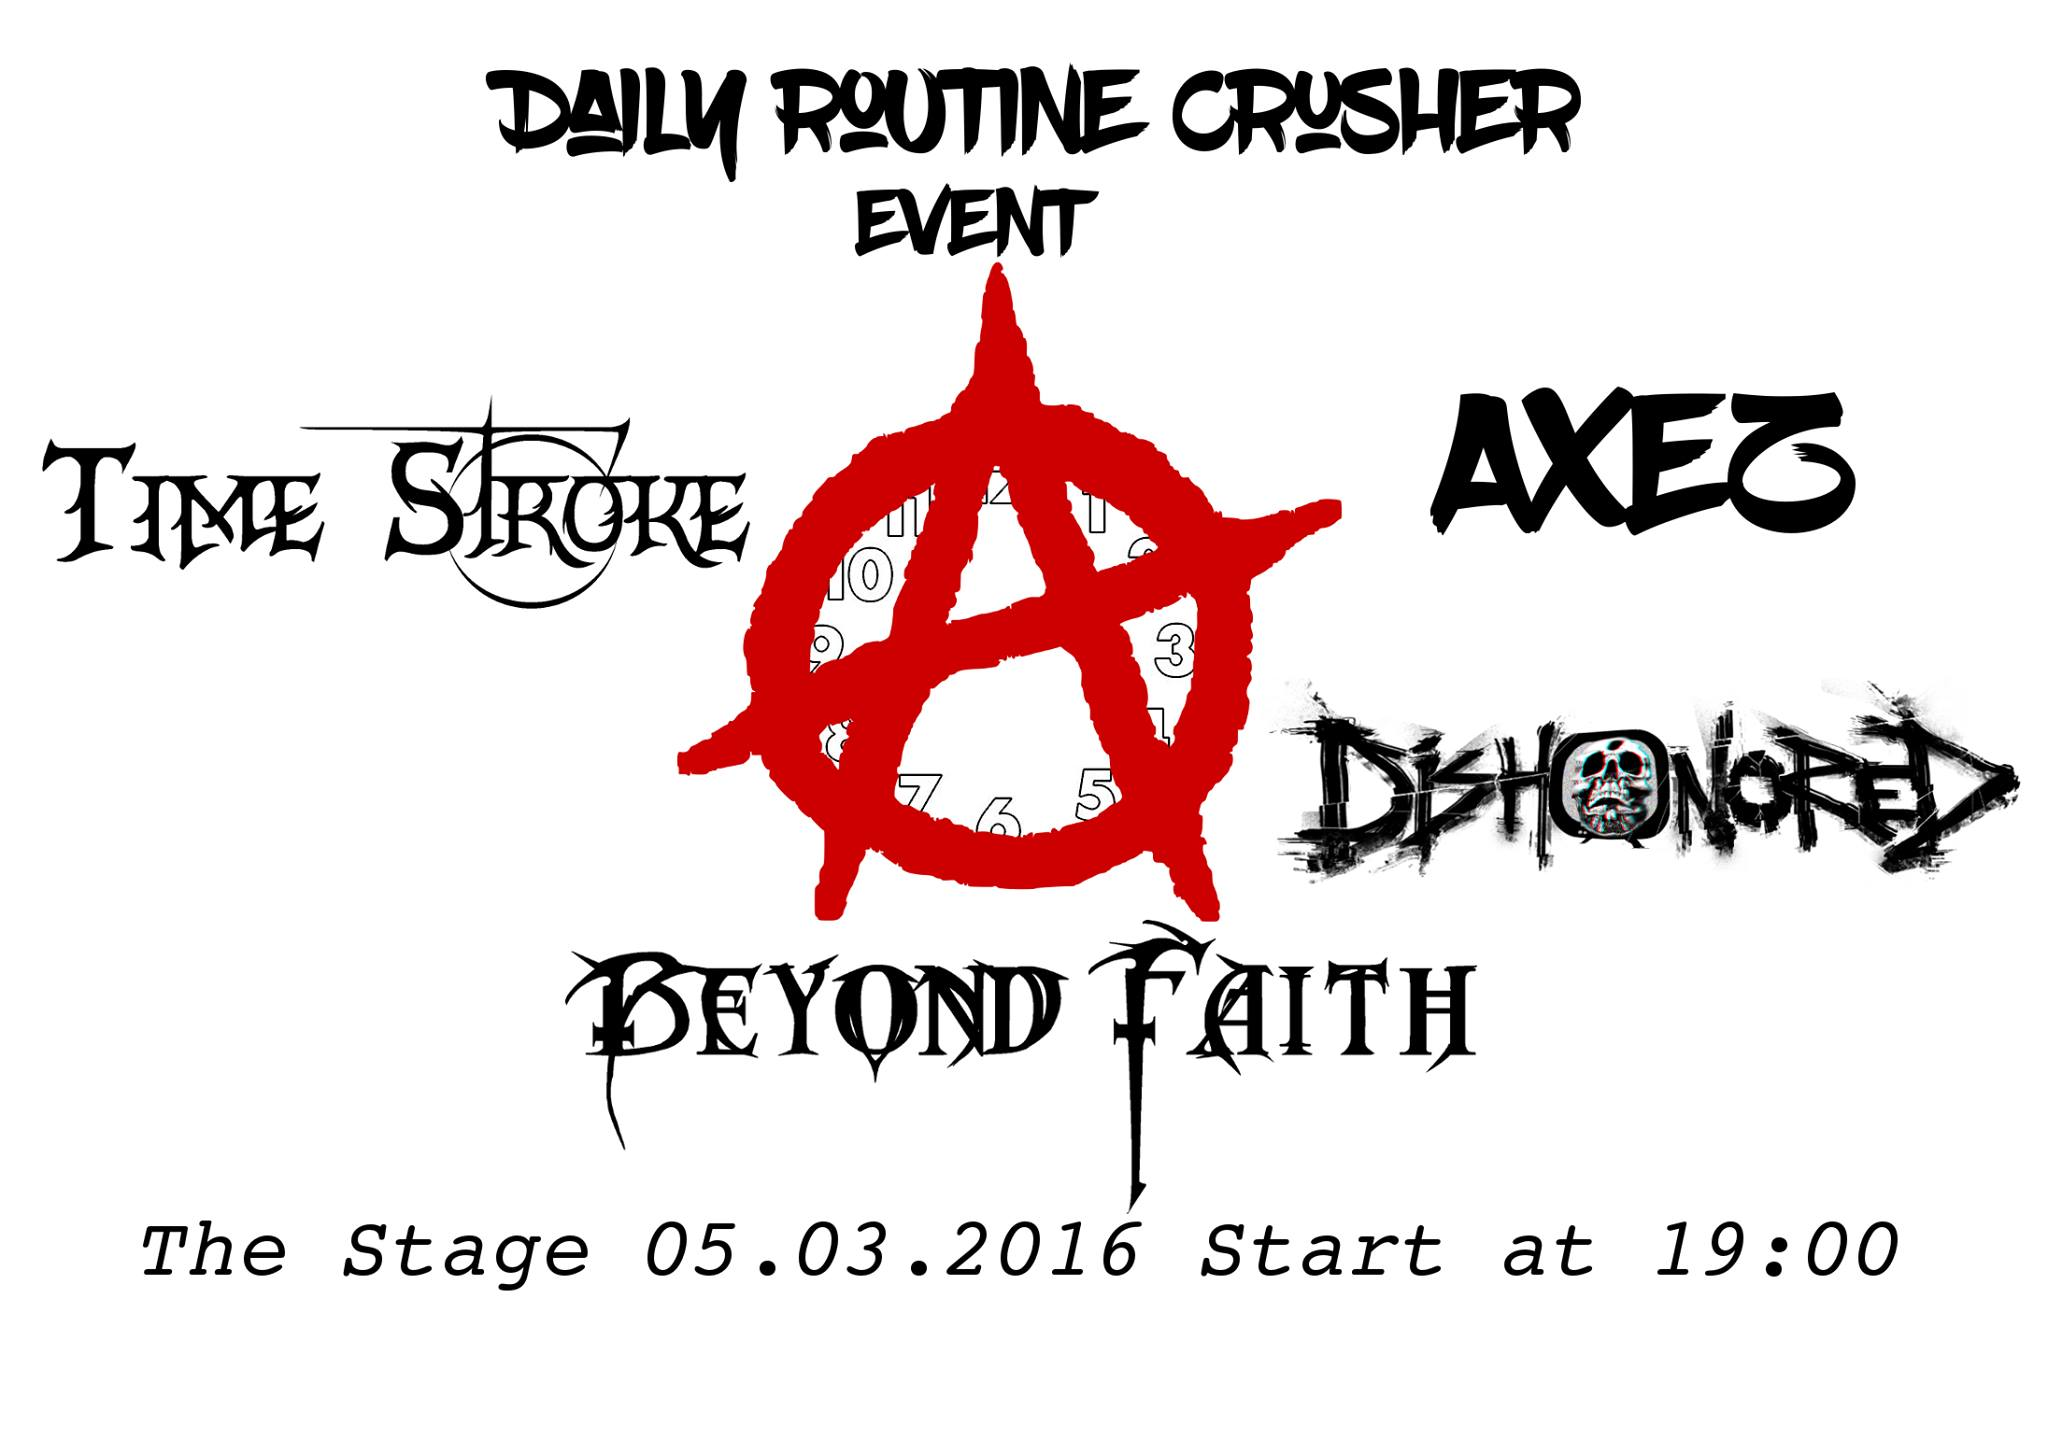 Daily Routine Crusher Event with Time Stroke, Beyond Faith, Dishonored & AxeZ